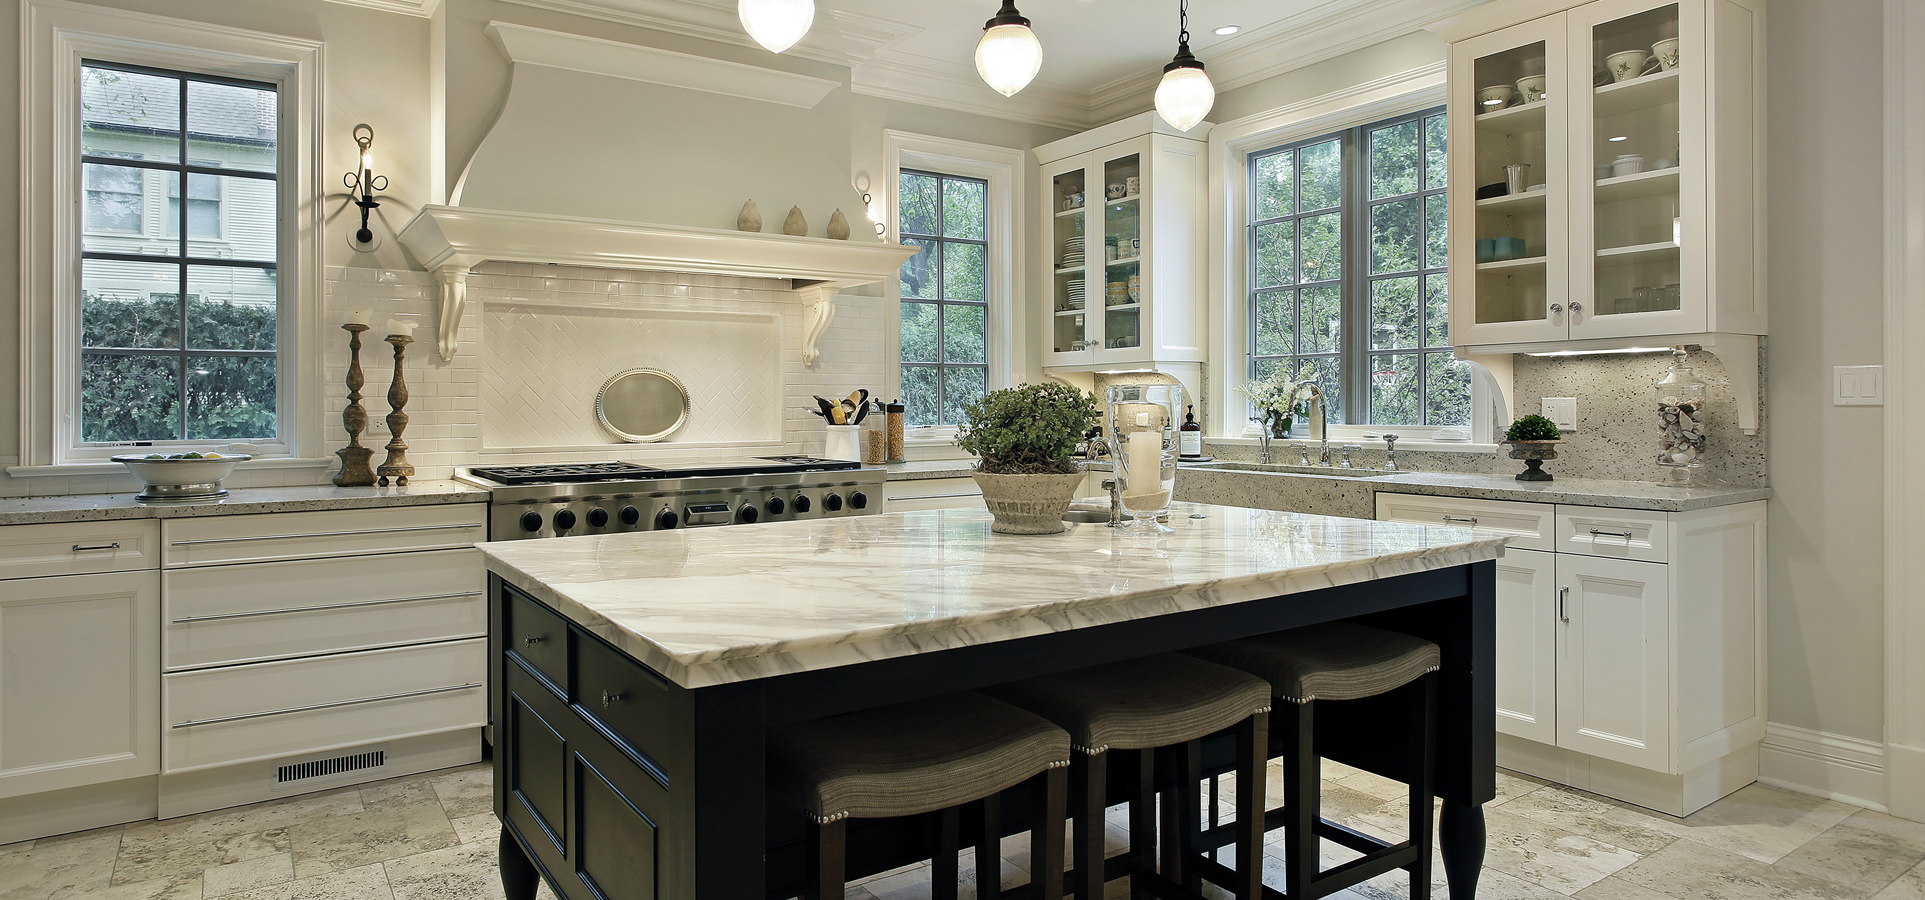 Affordable Marble And Granite Countertops In Newark And